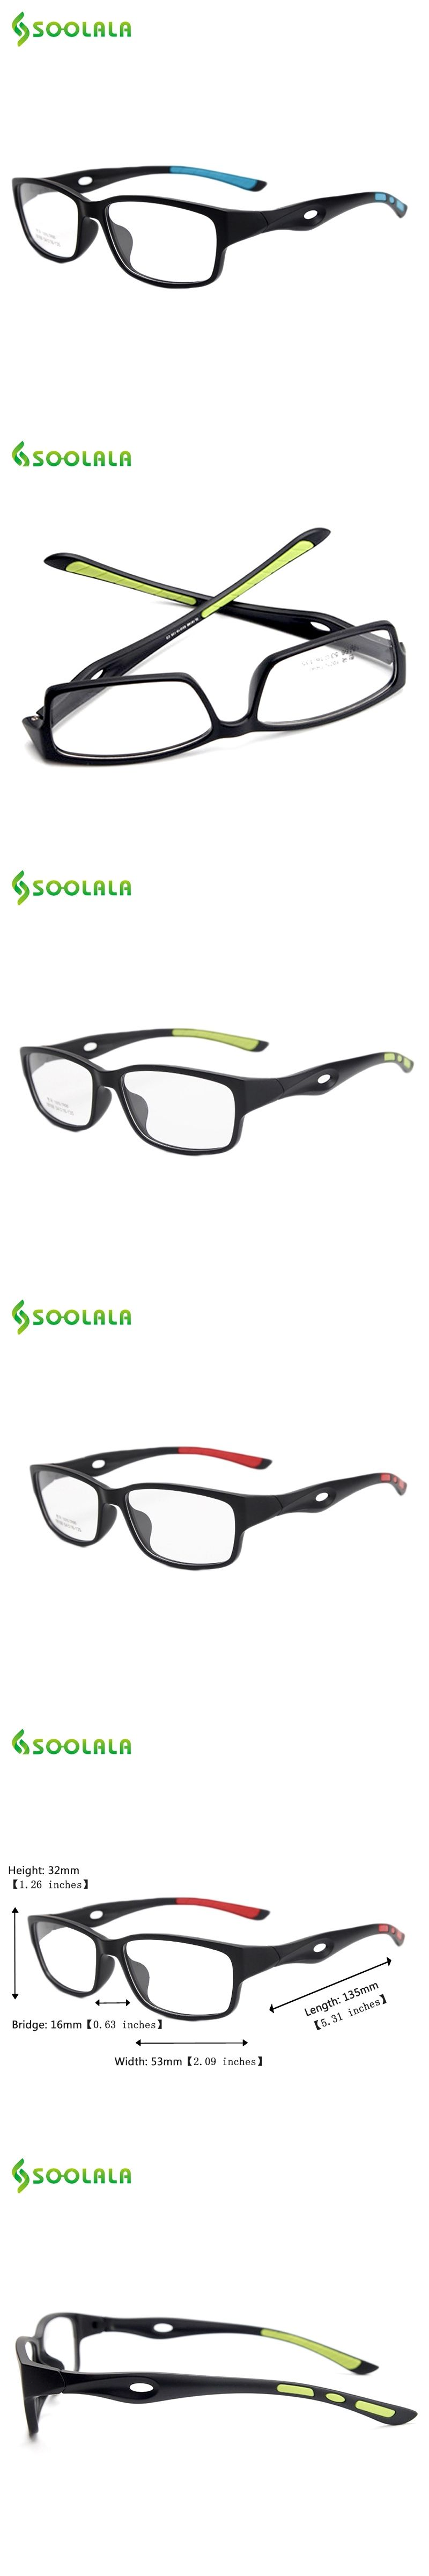 b8ae9bca20 SOOLALA TR90 Reading Glasses Sport Style Lightweight Clear Lens  Prescription Eyewear Frame Women Men Reading Glasses